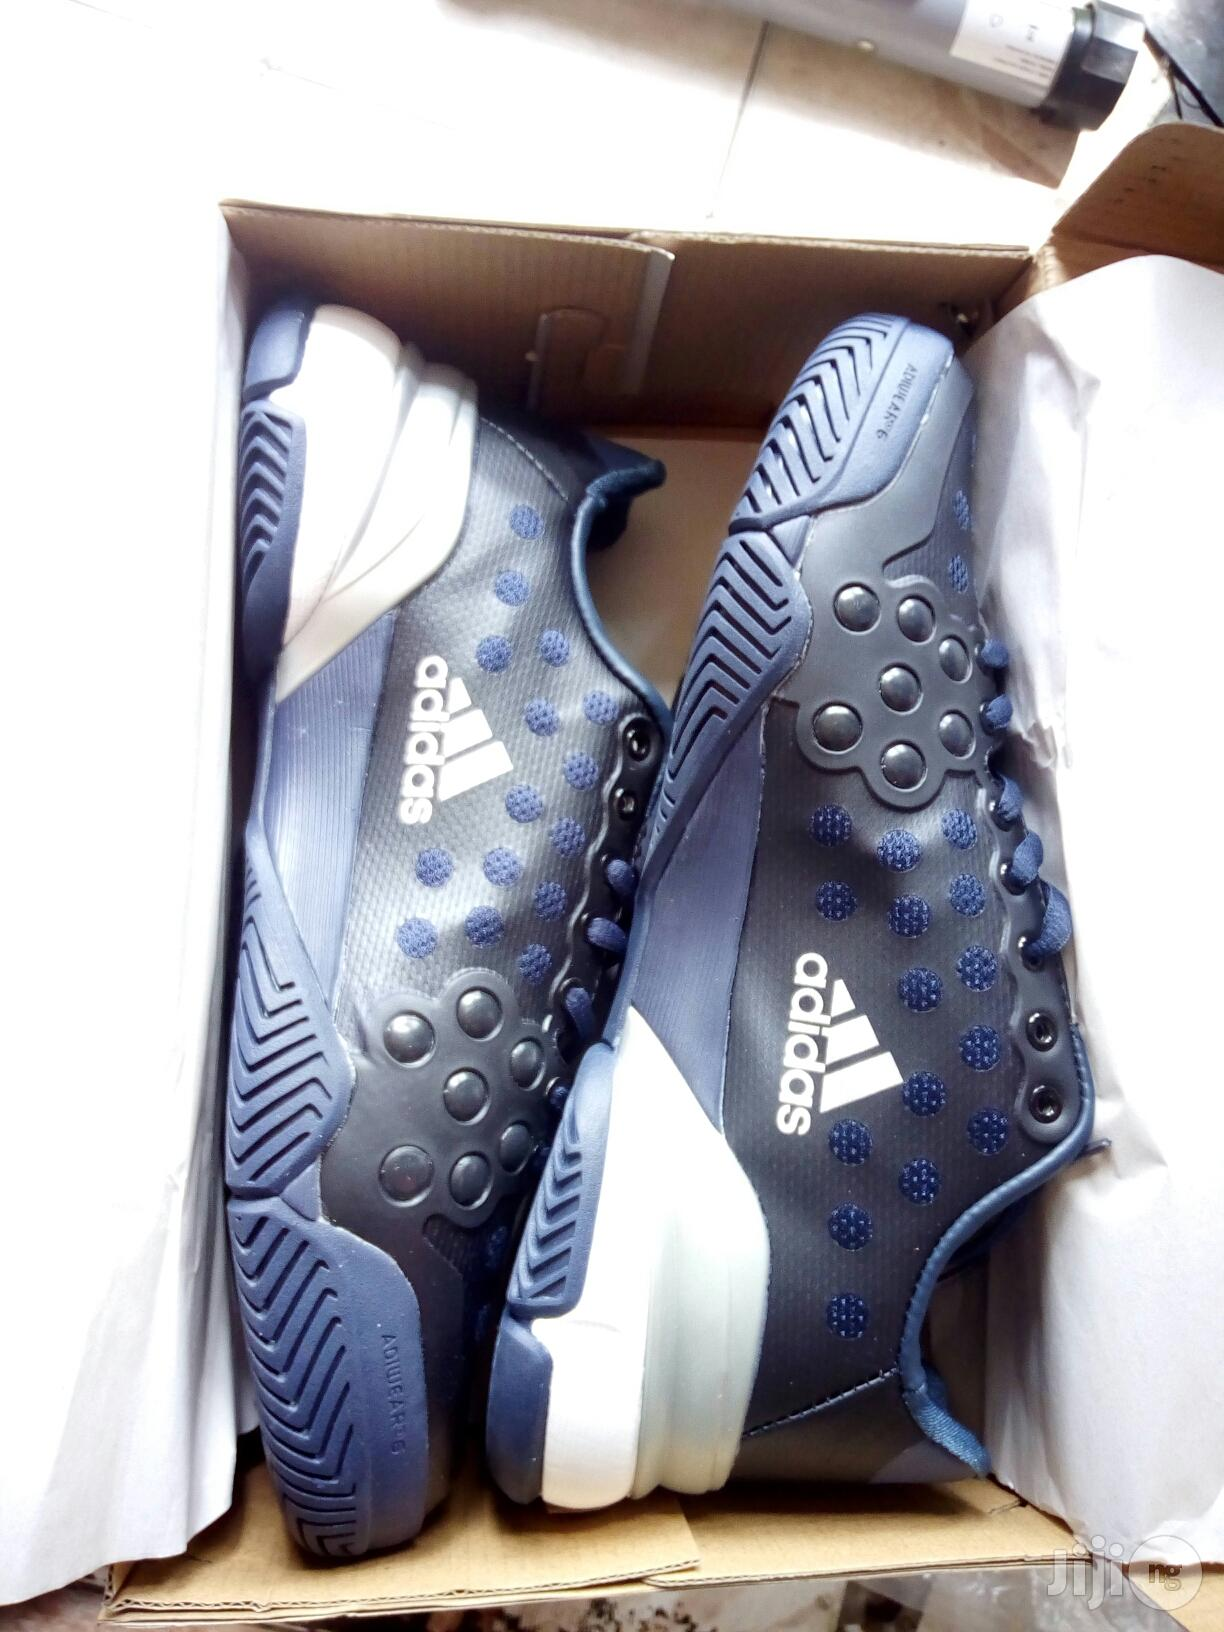 Adidas Lawn Tennis Shoes. | Shoes for sale in Ikeja, Lagos State, Nigeria